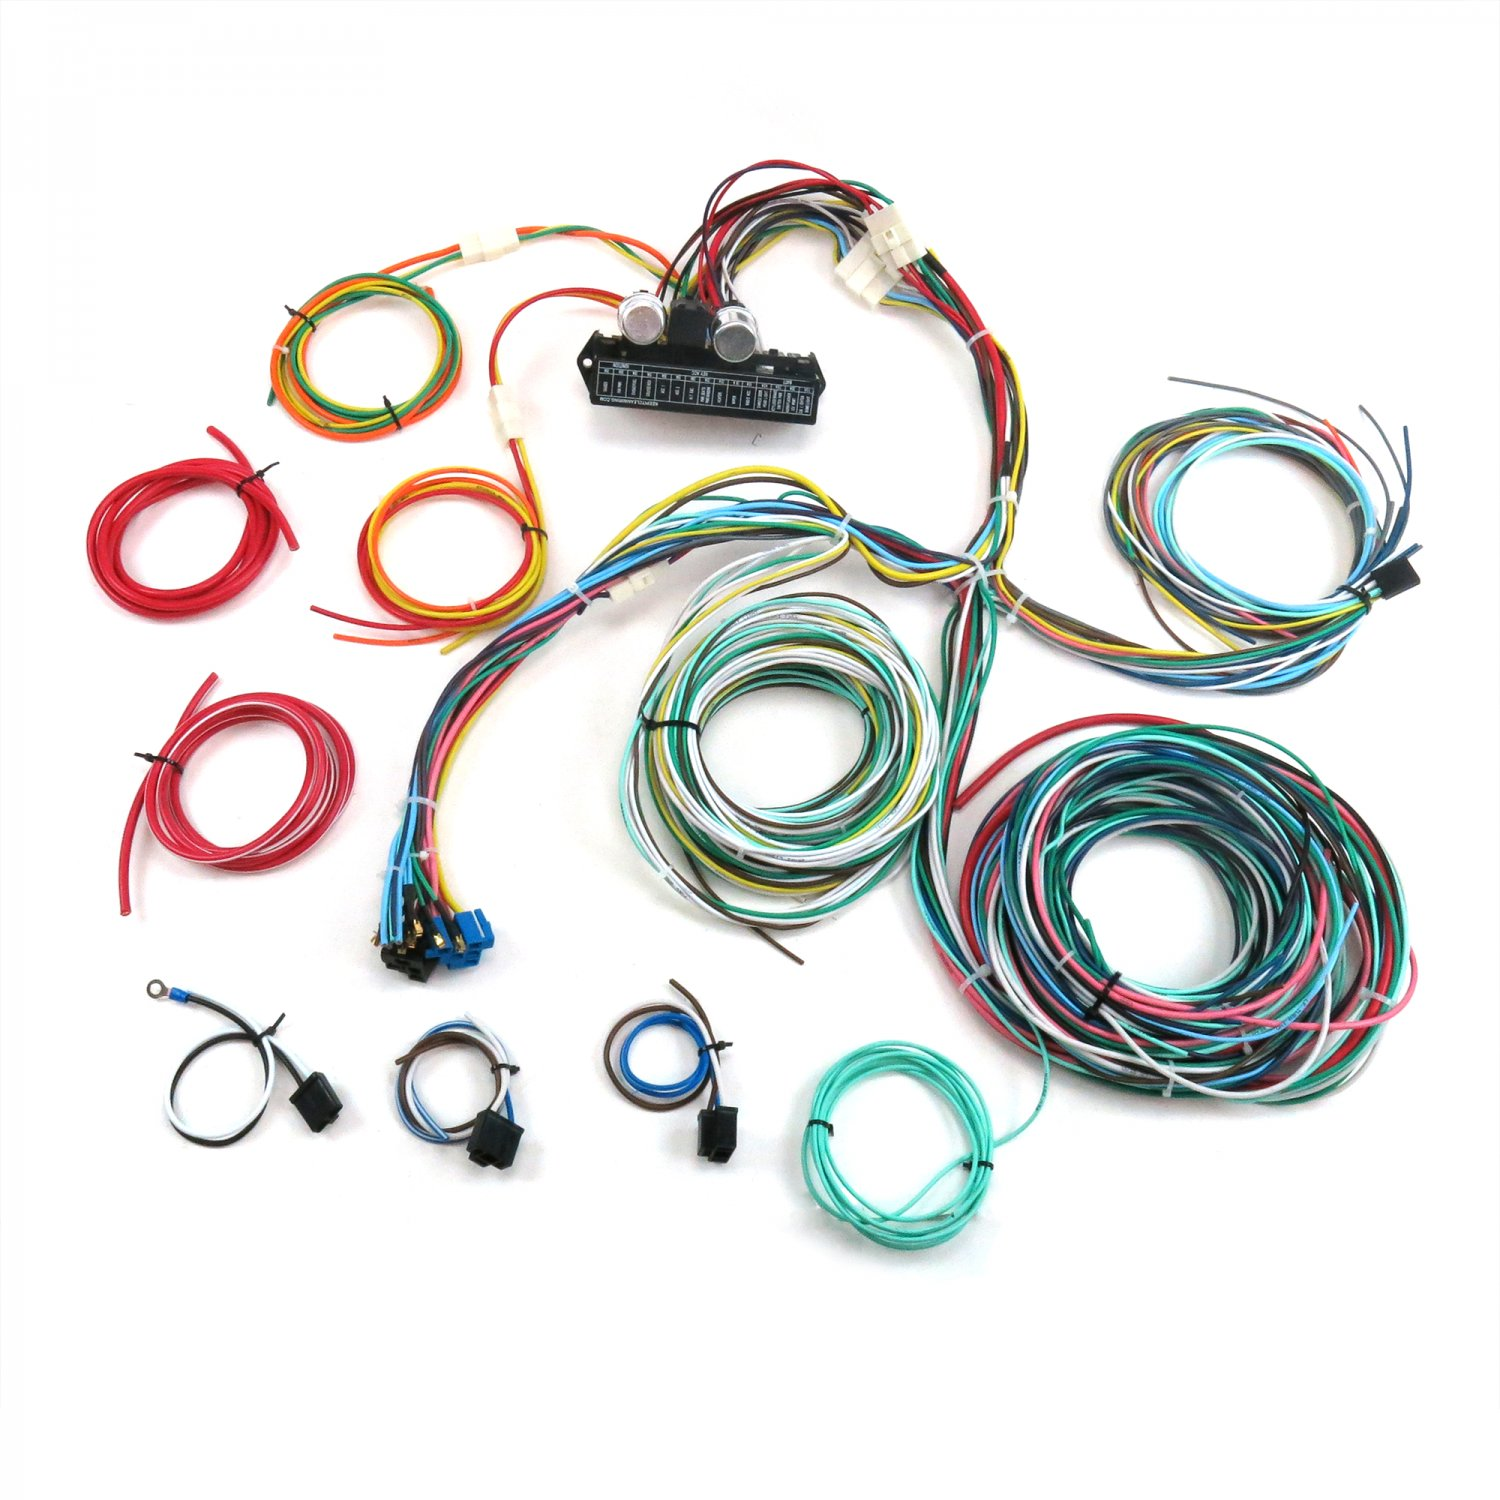 hight resolution of 1950 1954 chevy car complete modern update re wiring harness 12v conversion